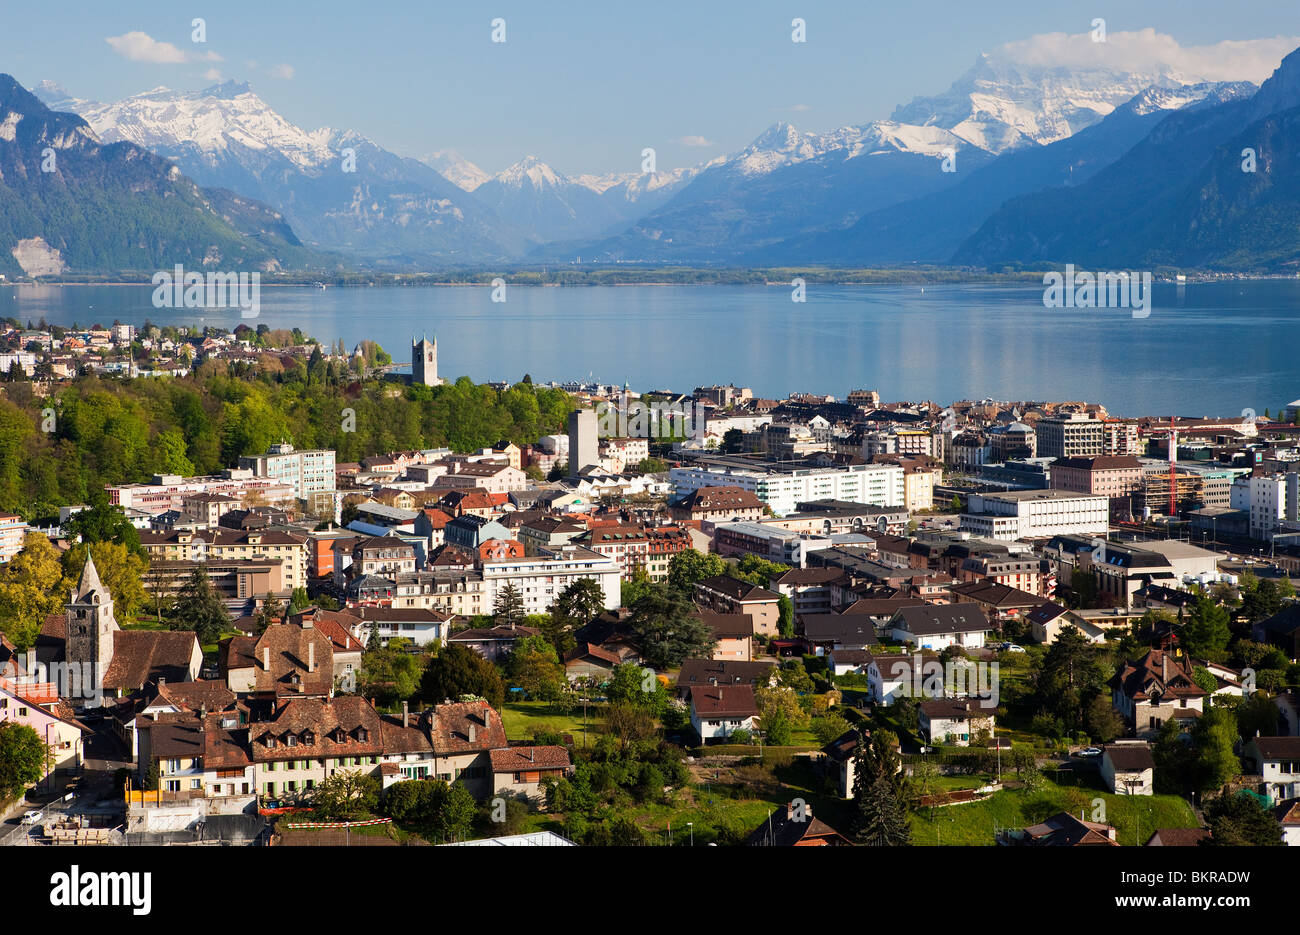 The City of Vevey, Switzerland Stock Photo